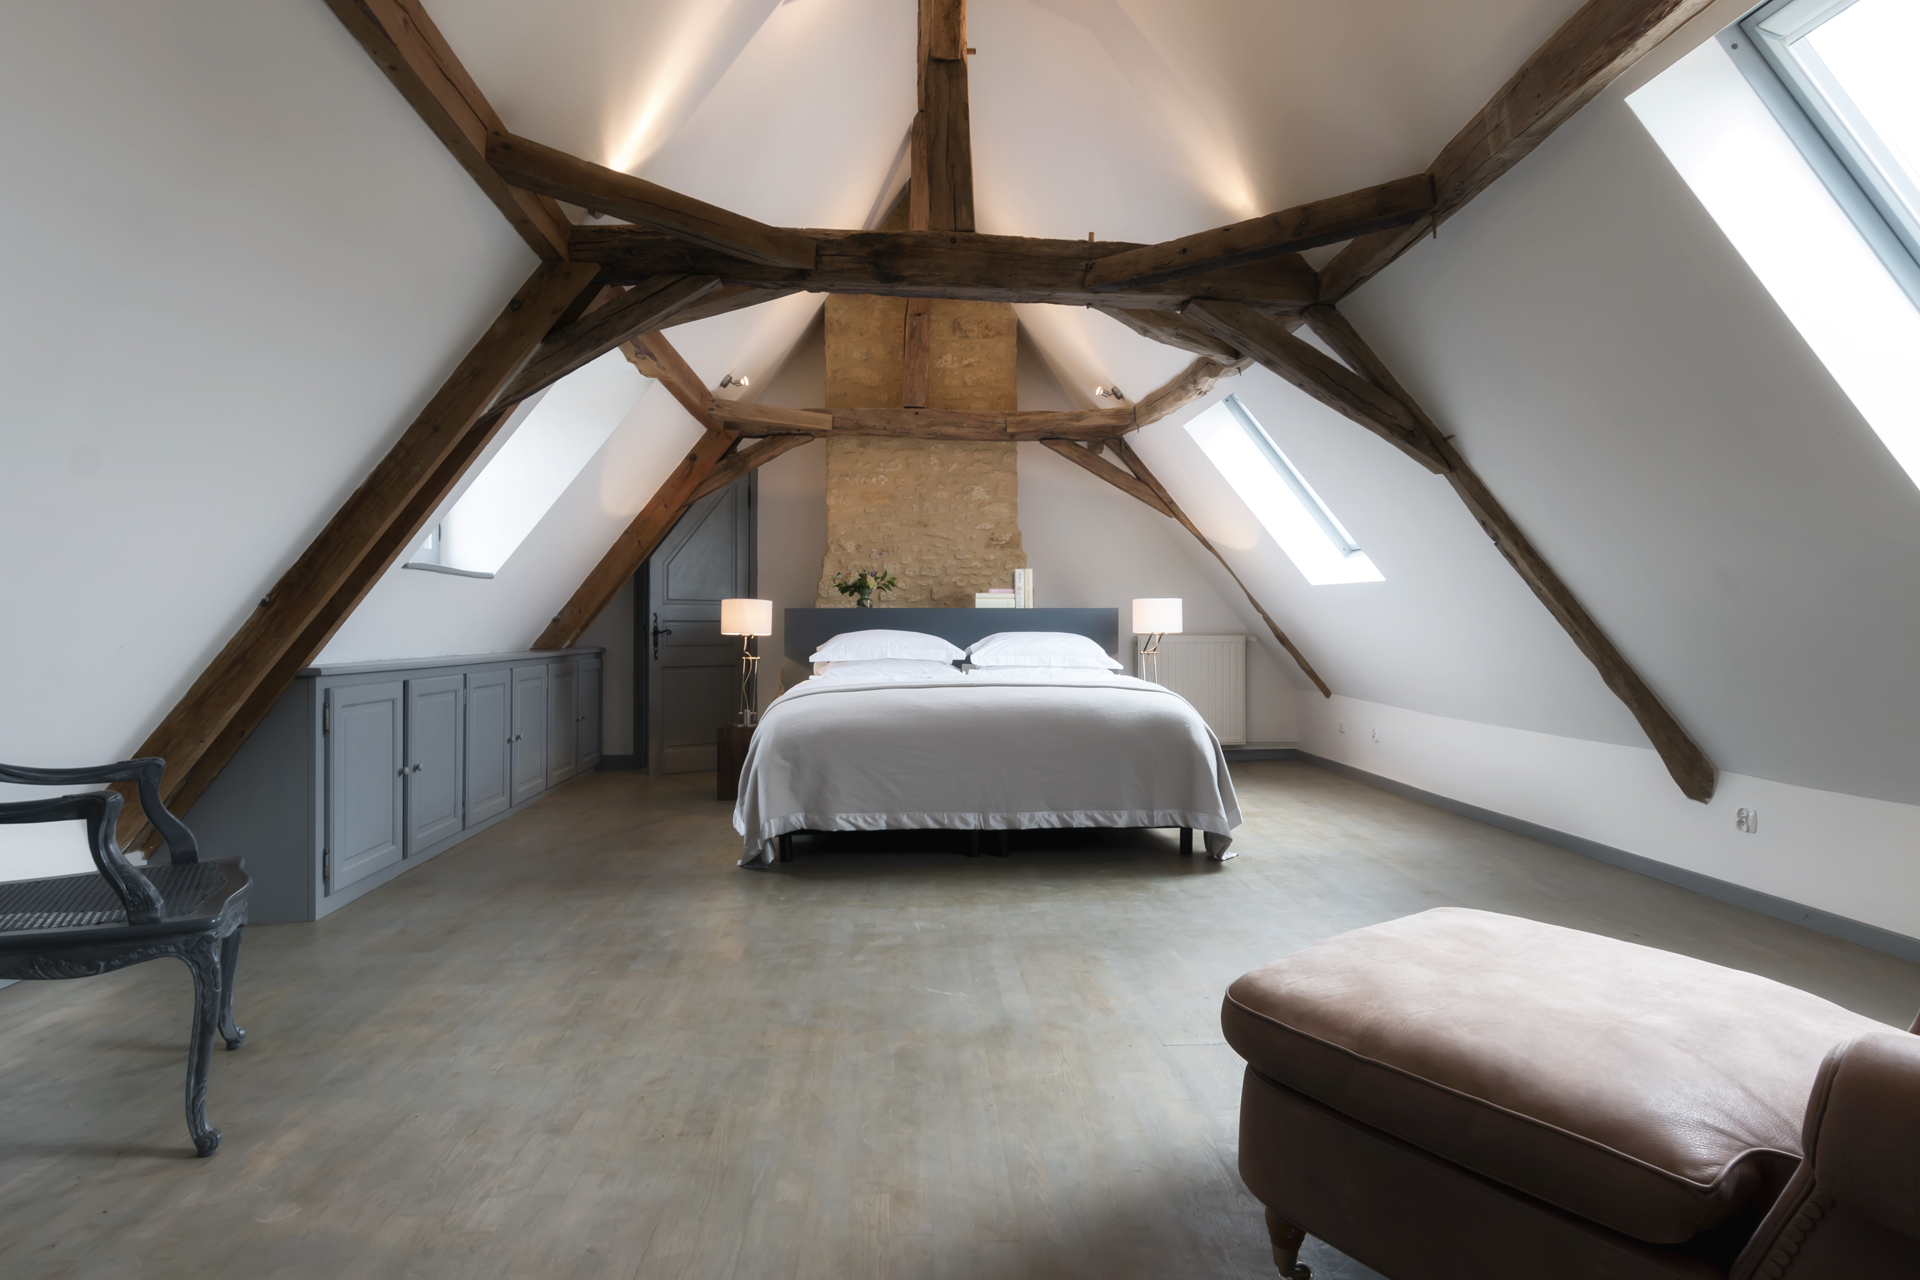 Bedroom 1 of Le Mas, a family holiday home in the Dordogne, with exposed beams, wooden floor, grey painted cupboard and a double bed